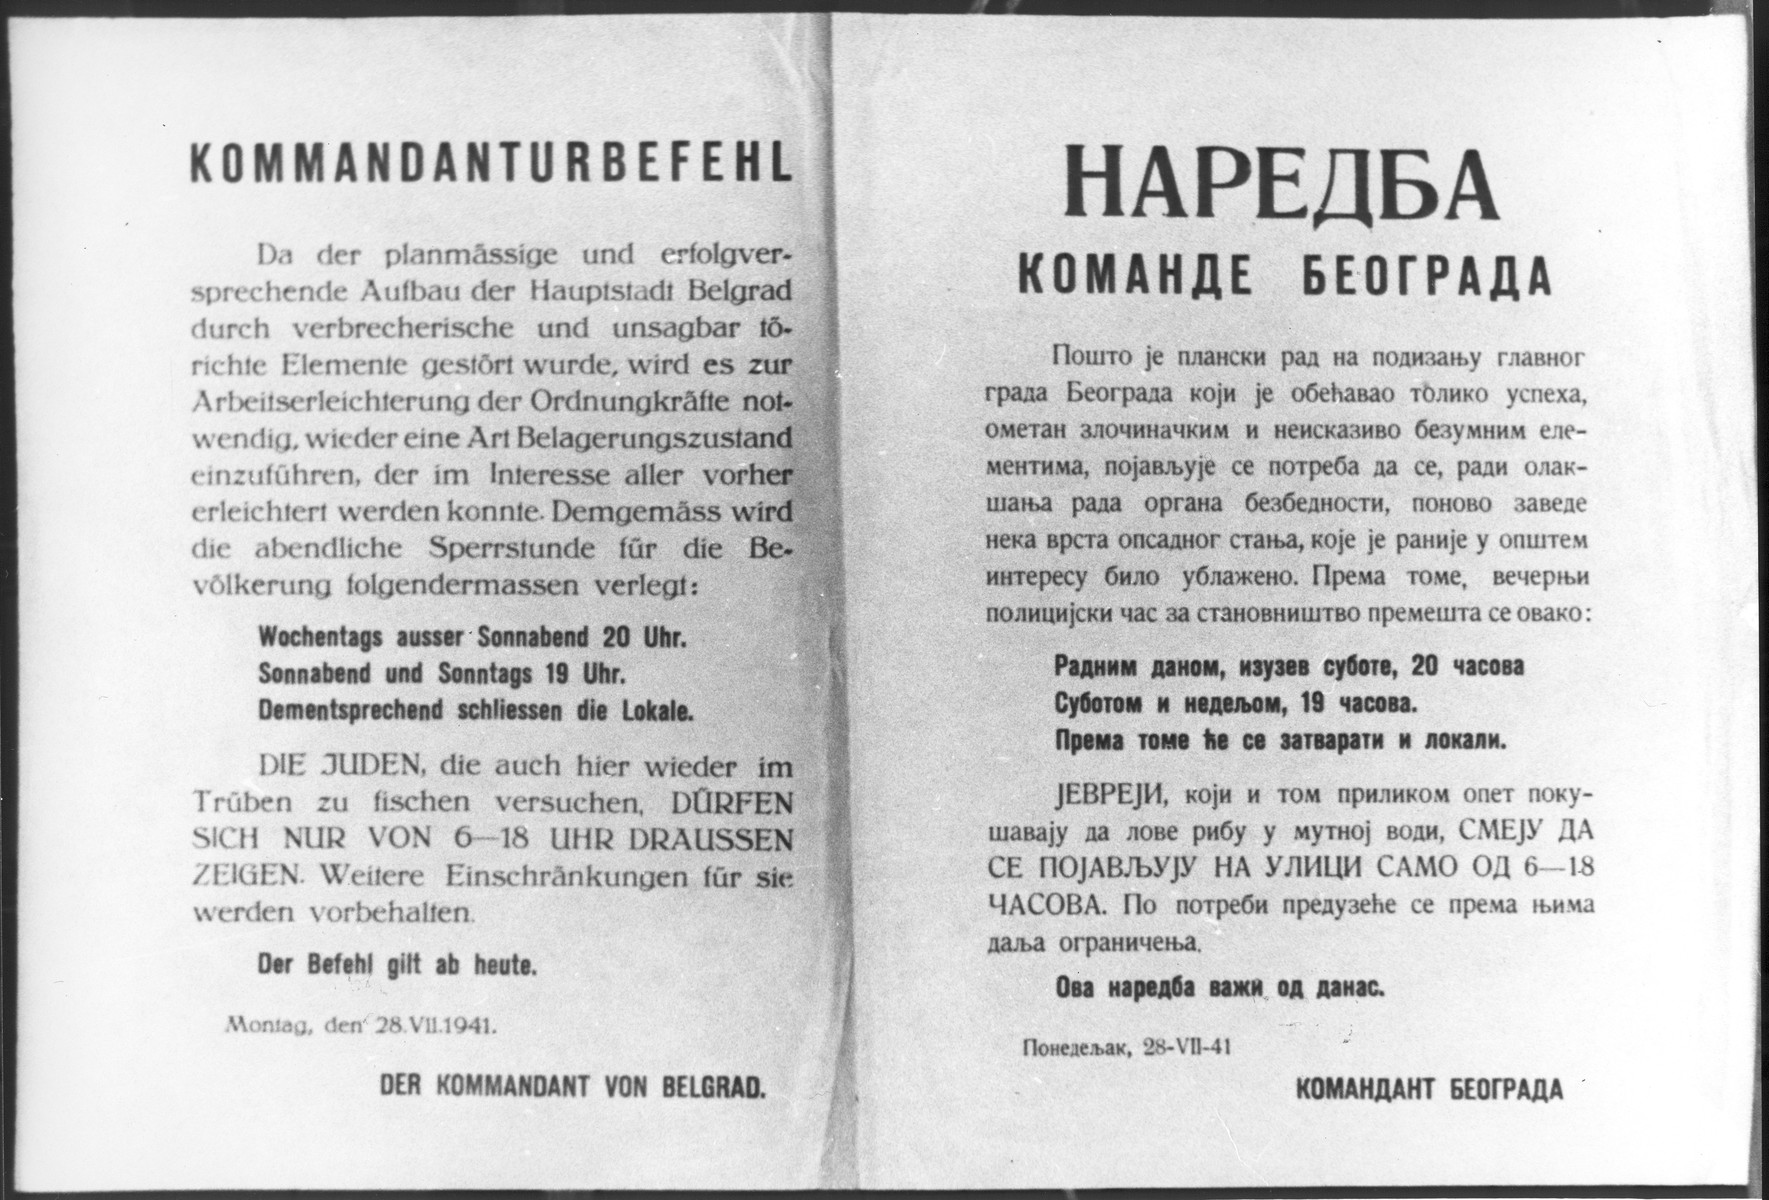 Decree of the Main Command of the city of Belgrade issued in German and Serbo-Croatian regarding the setting of a curfew for Jews living in the city.  The document states that since the current urbanization plan is being endangered by criminal activity, it is necessary to establish a curfew for Jews in the city.  The curfew begins at 8 pm on Monday through Friday, and at 7 pm on Saturday and Sunday.  Jewish-owned businesses must be closed as of the time of the curfew.  If the Jews do not comply, further restrictions will be established.